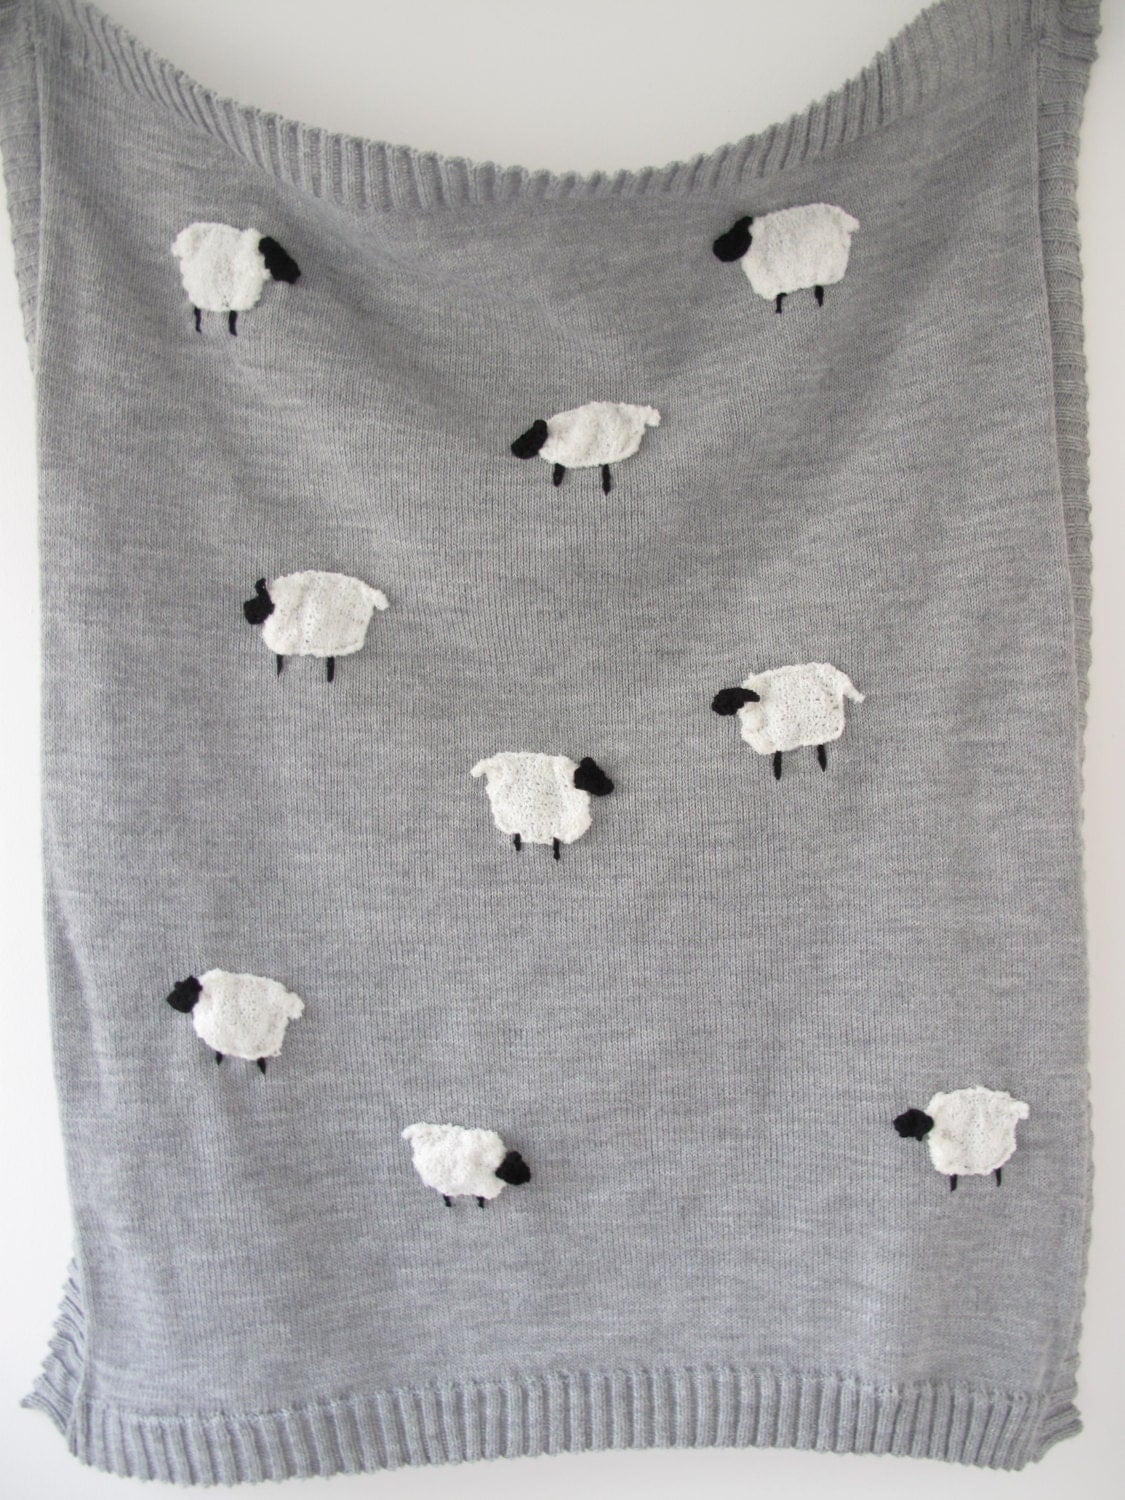 Knitting Pattern For Sheep Blanket : knitted grey sheep baby blanket with knitted and crochet sheep